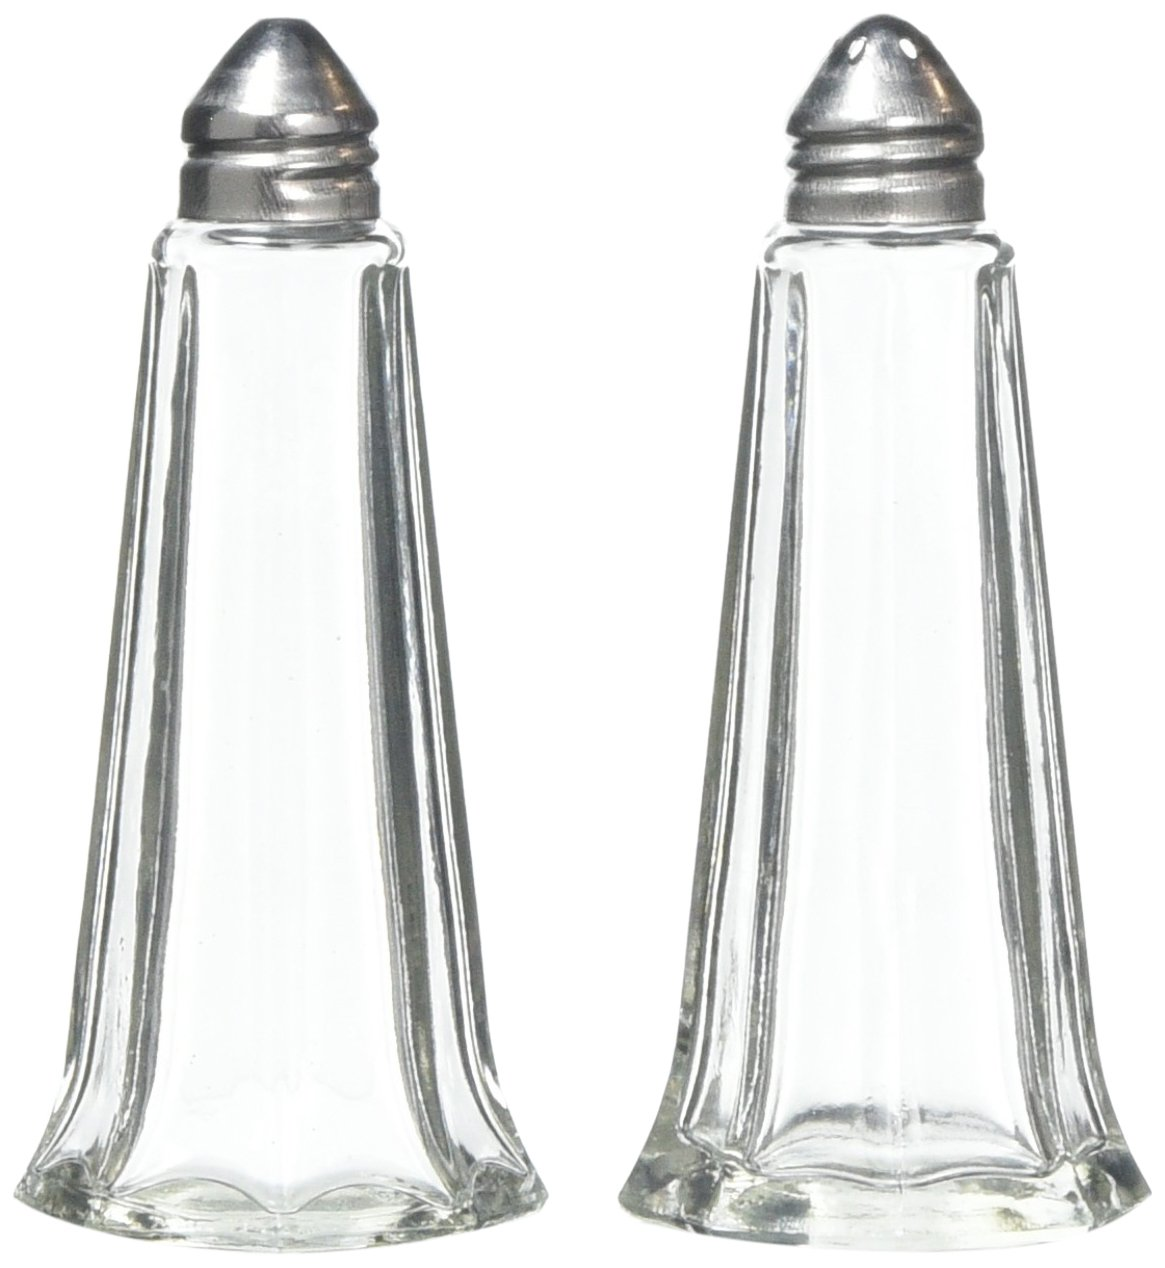 KitchenCraft Classic-Style Glass Salt and Pepper Shakers, 11.5 cm (4.5